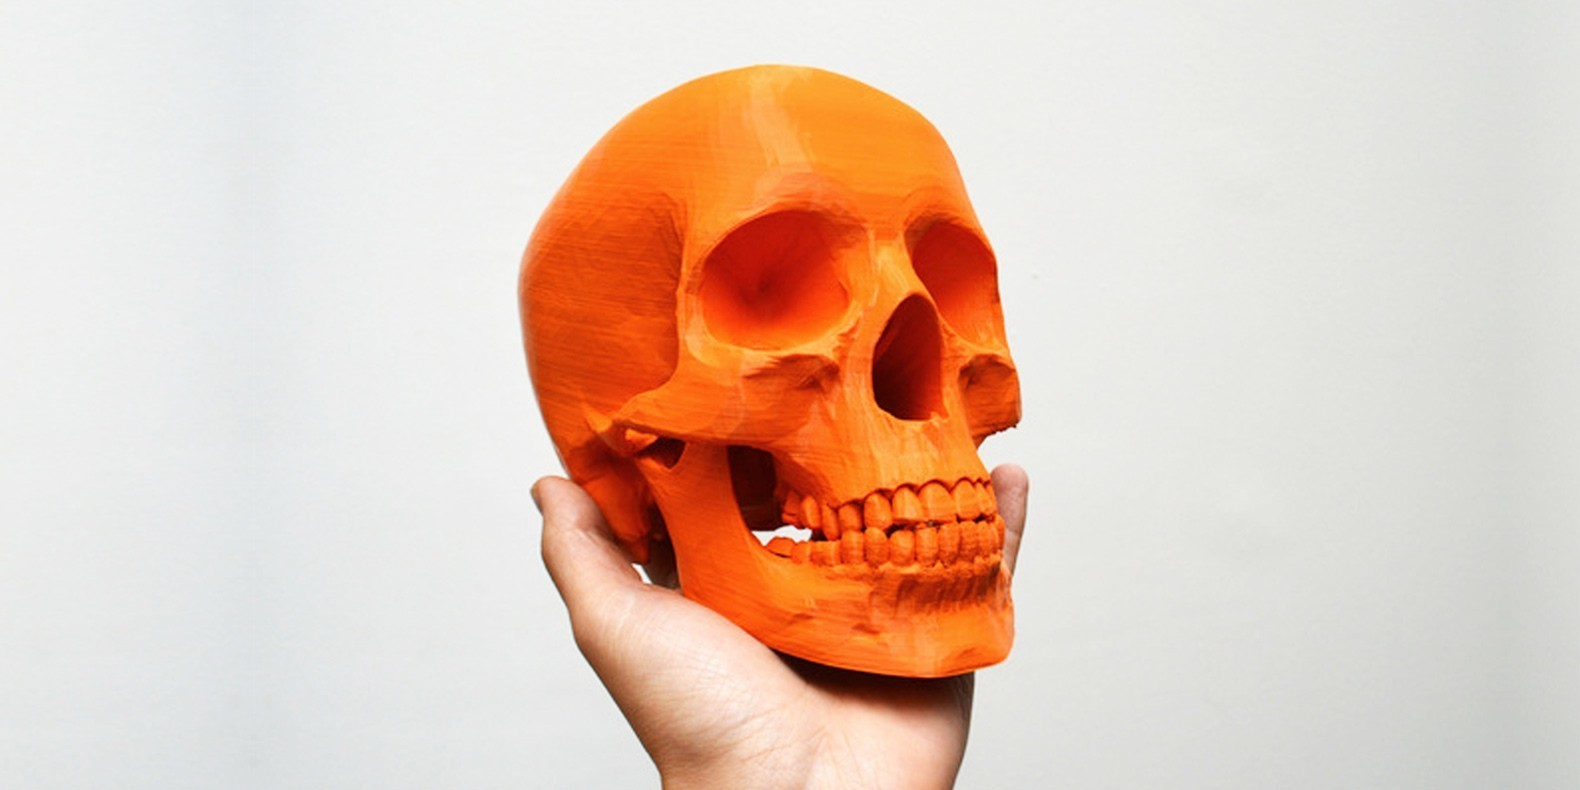 hight resolution of best 3d printer files of skulls